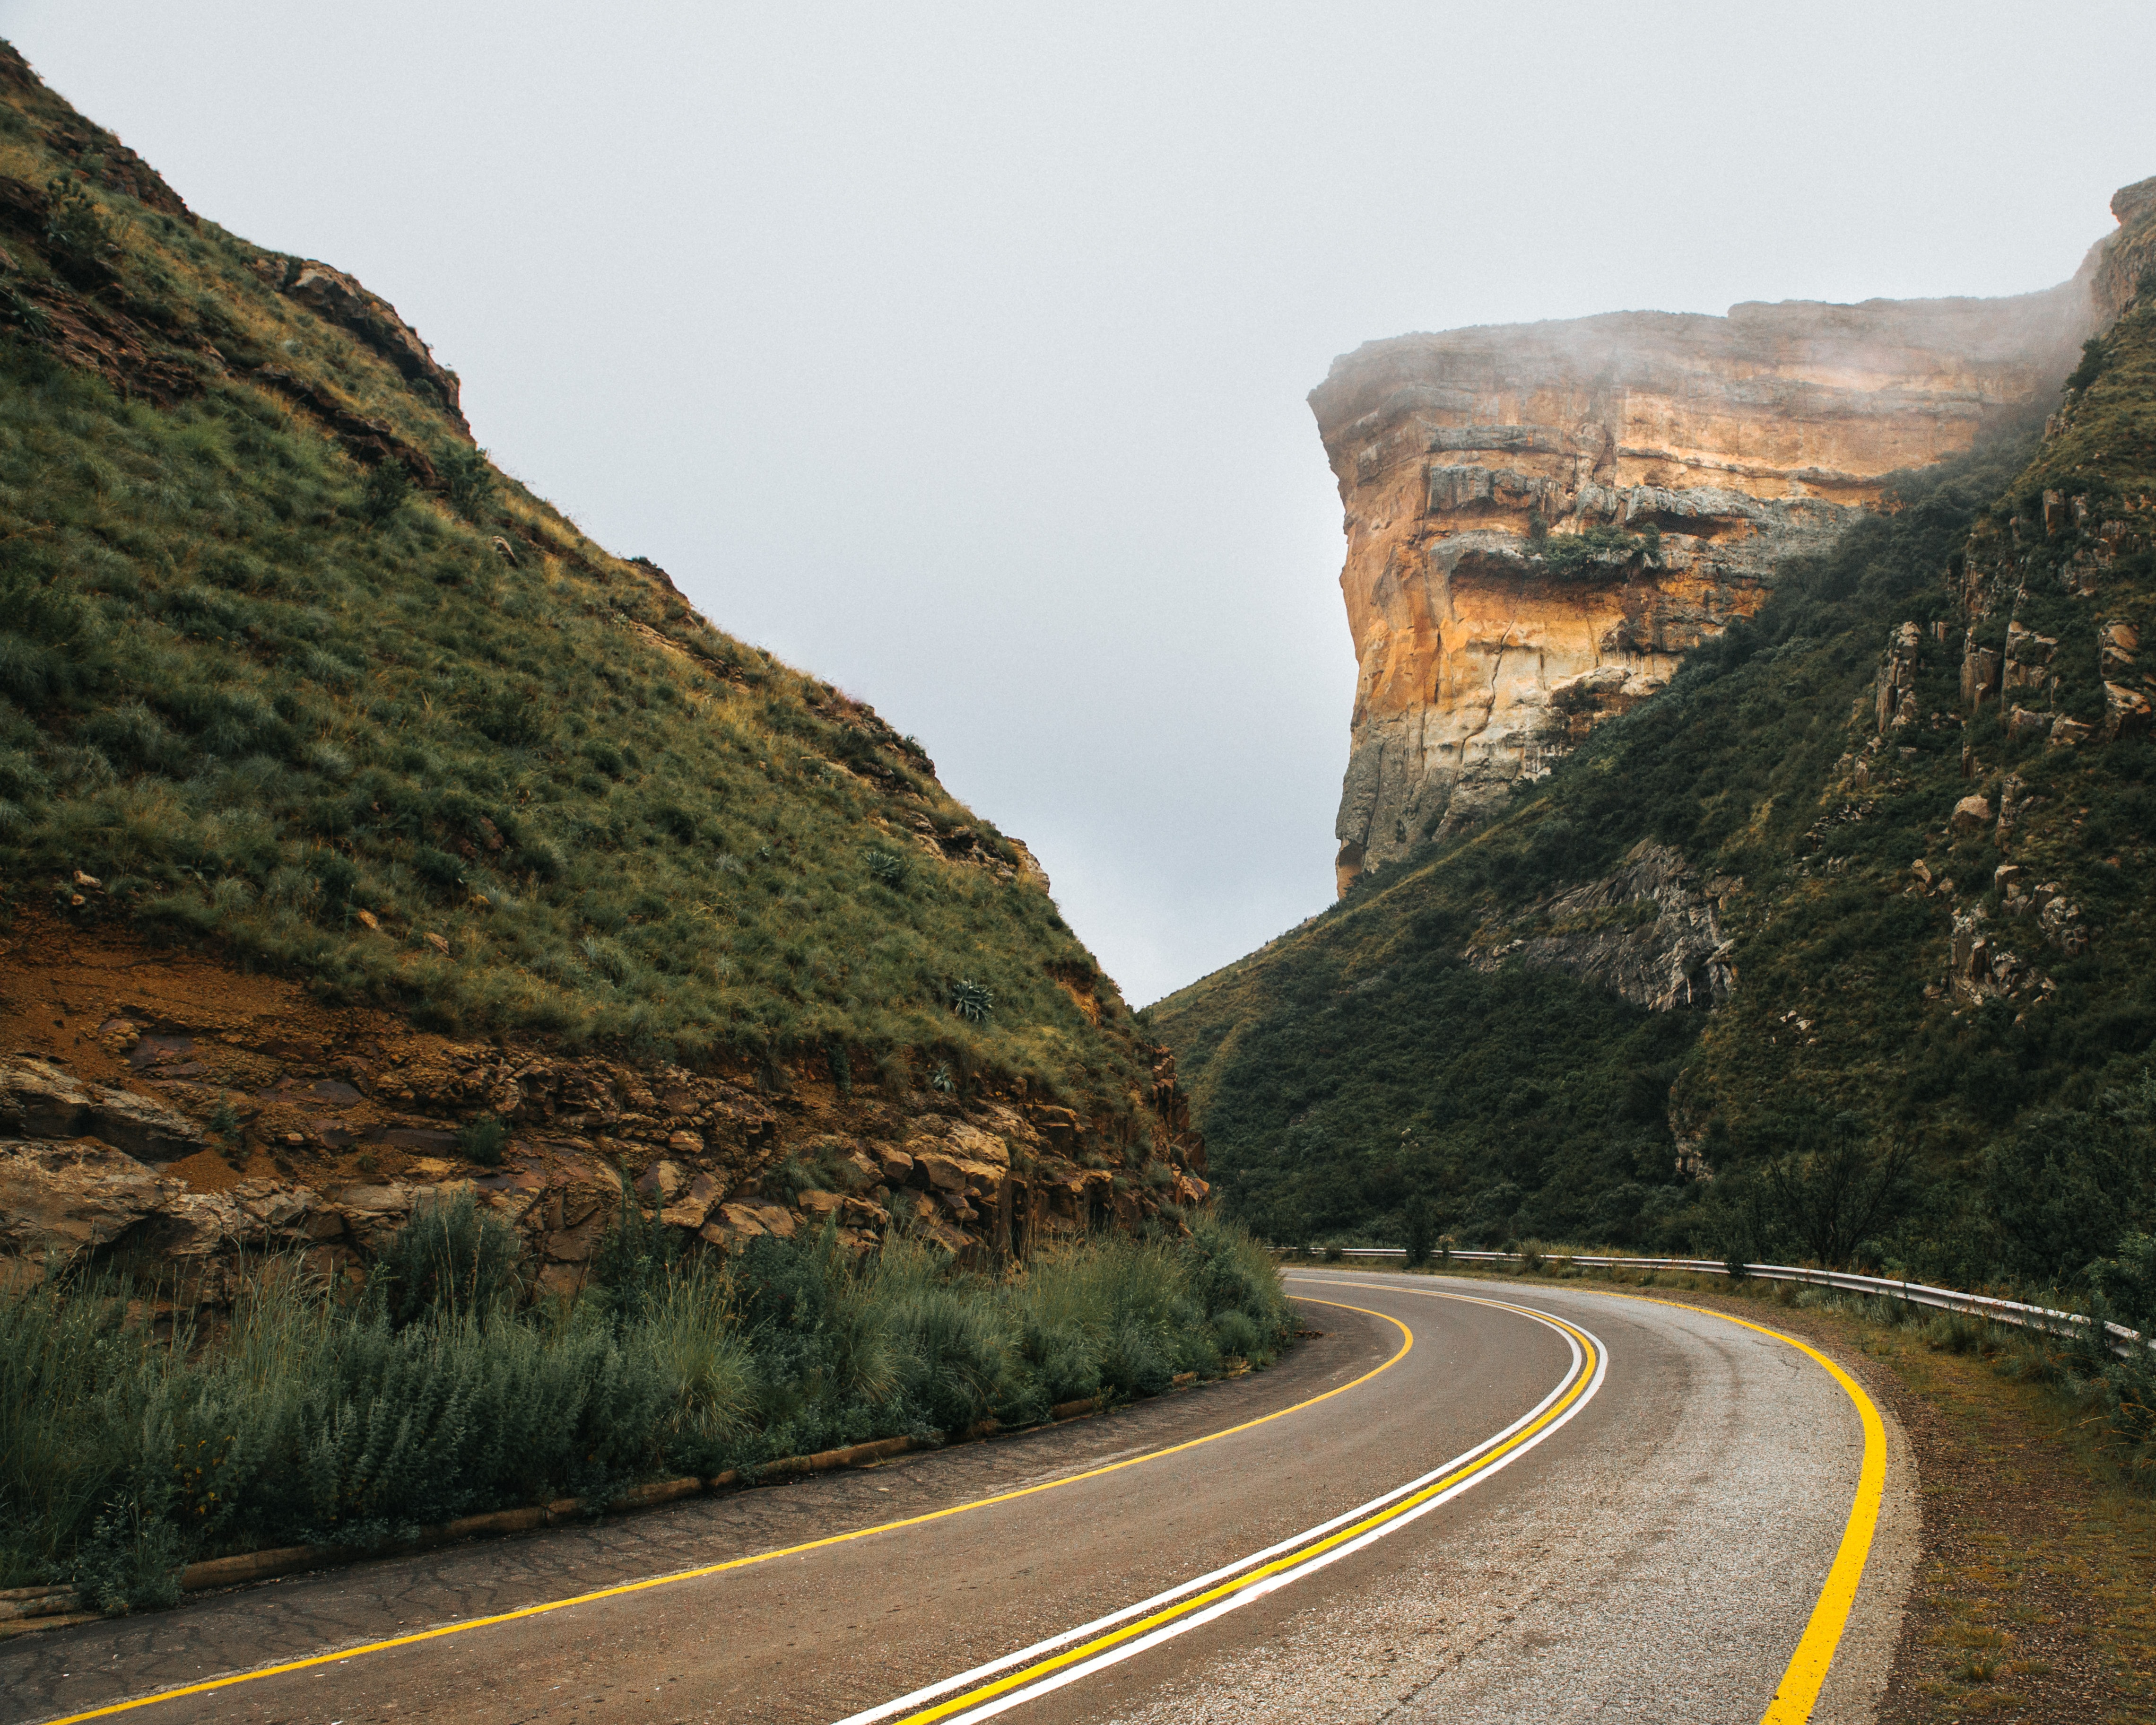 gray paved highway in between of mountain